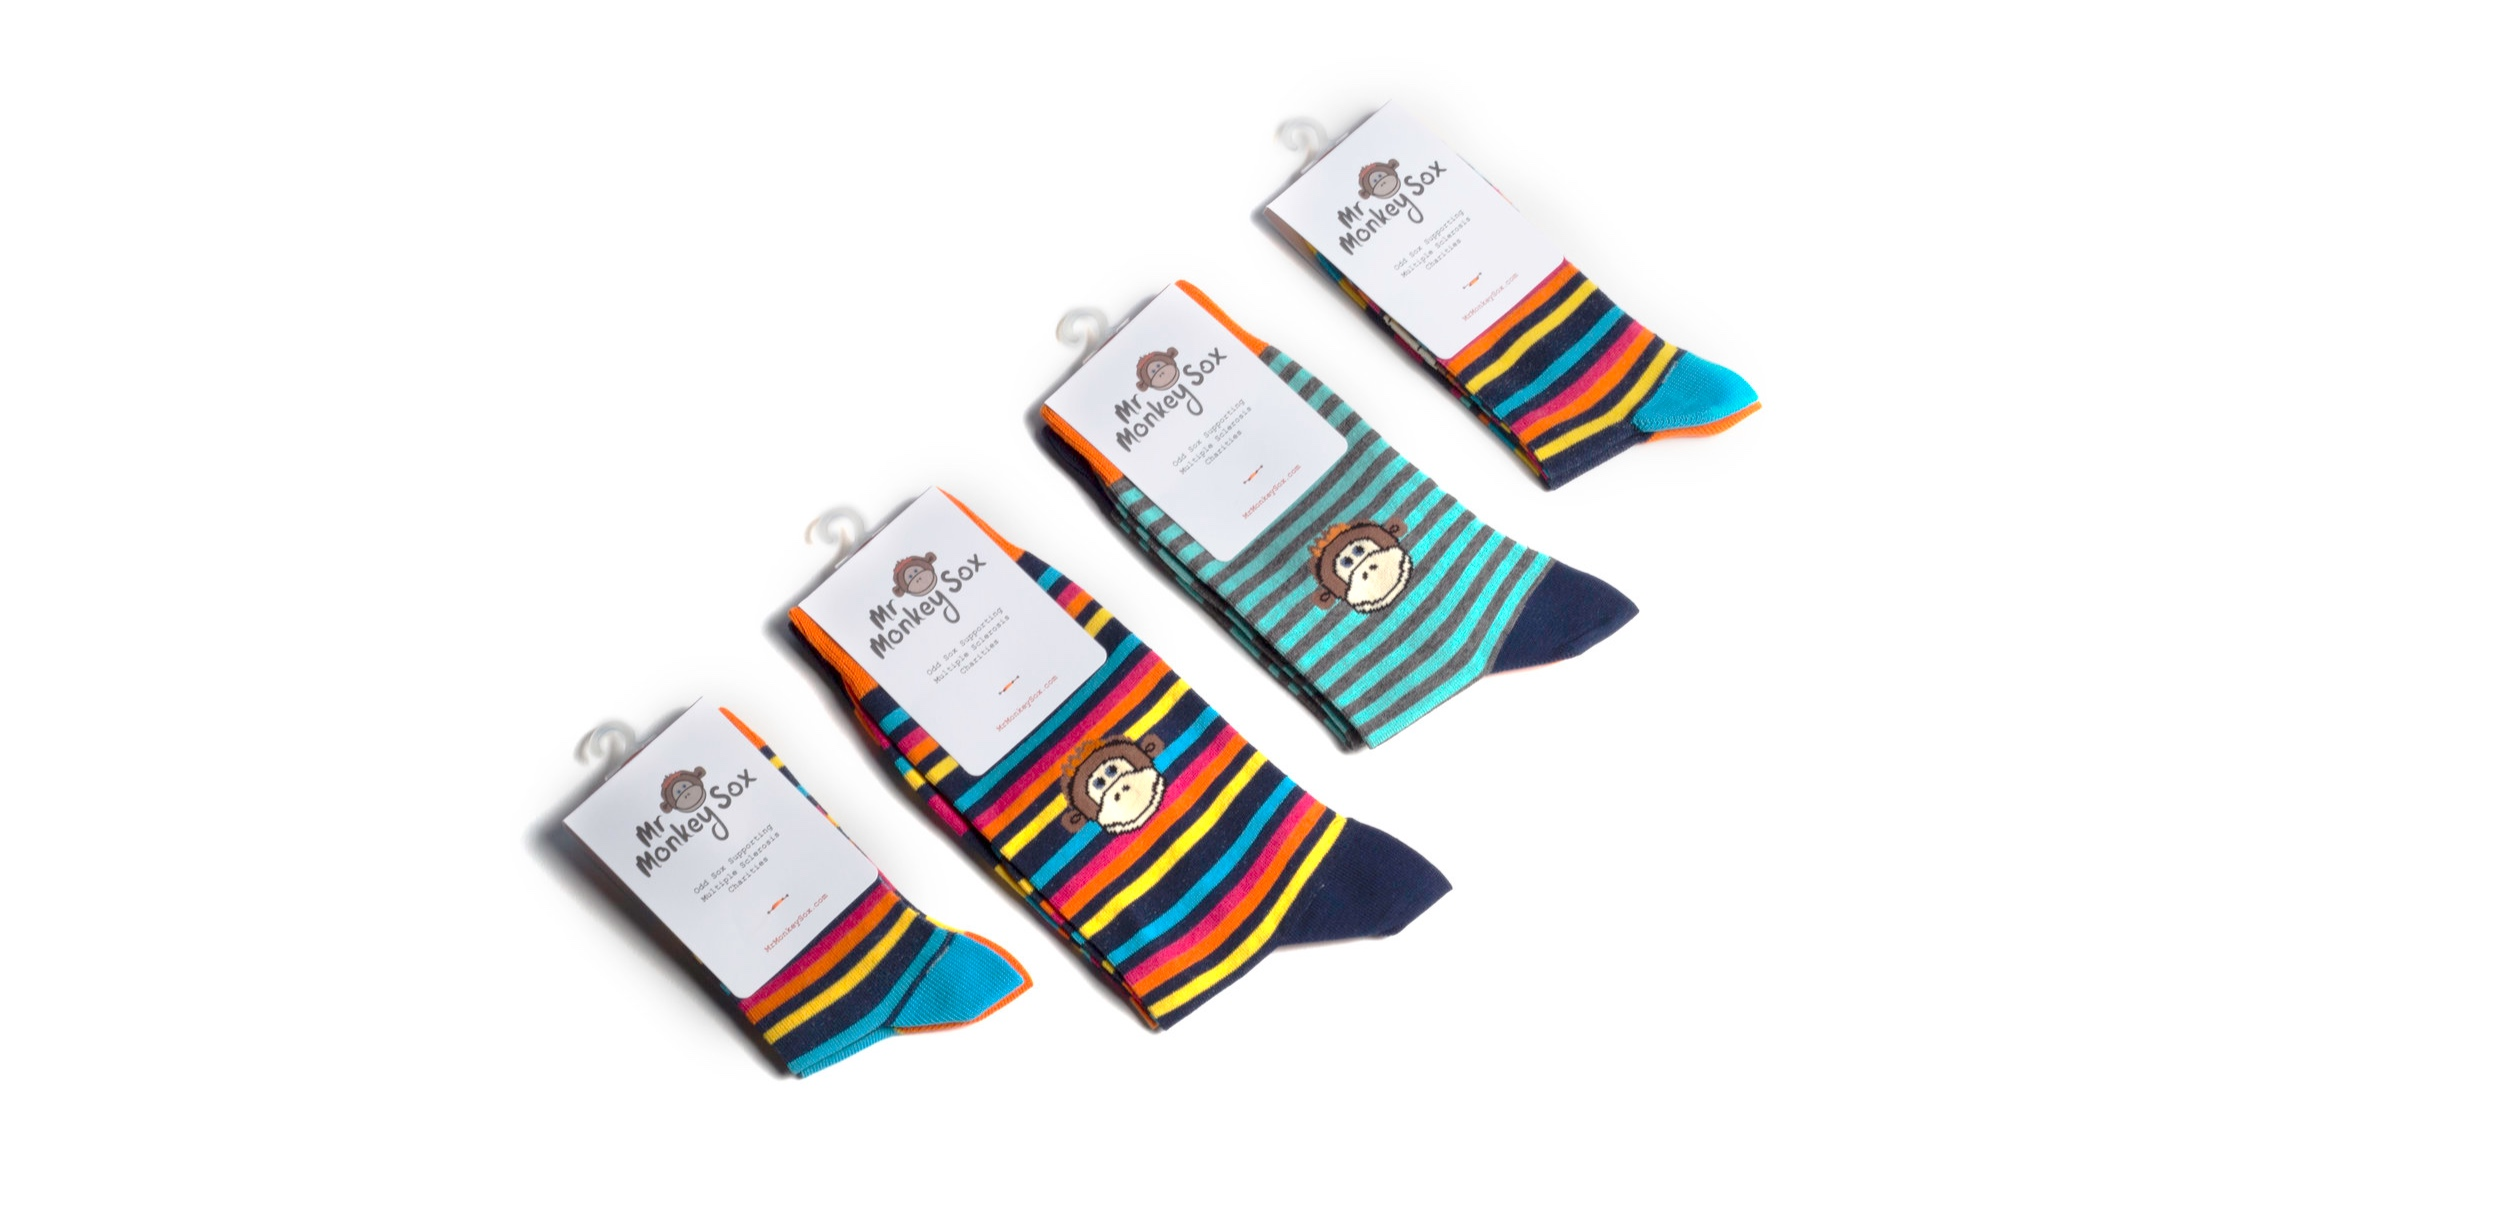 NOT-FOR-PROFIT - Mr Monkey Sox is a Community Interest Company limited by guarantee. We donate 50% of net profits directly to our partner MS charities. The remaining profit is re-invested into new stock and new ideas to donate even more money.